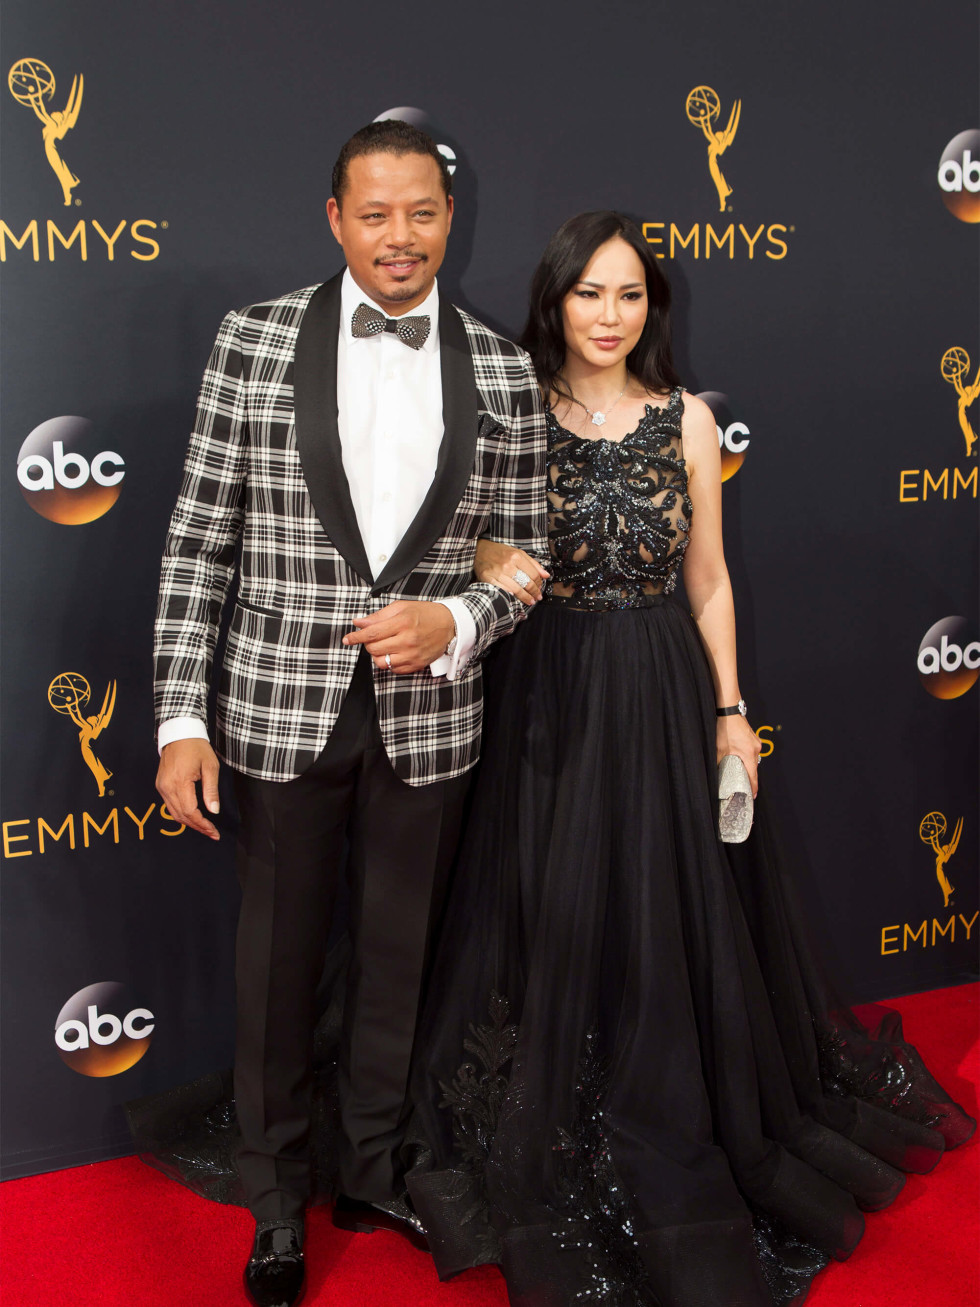 Terrence Howard at Emmy in checked tux